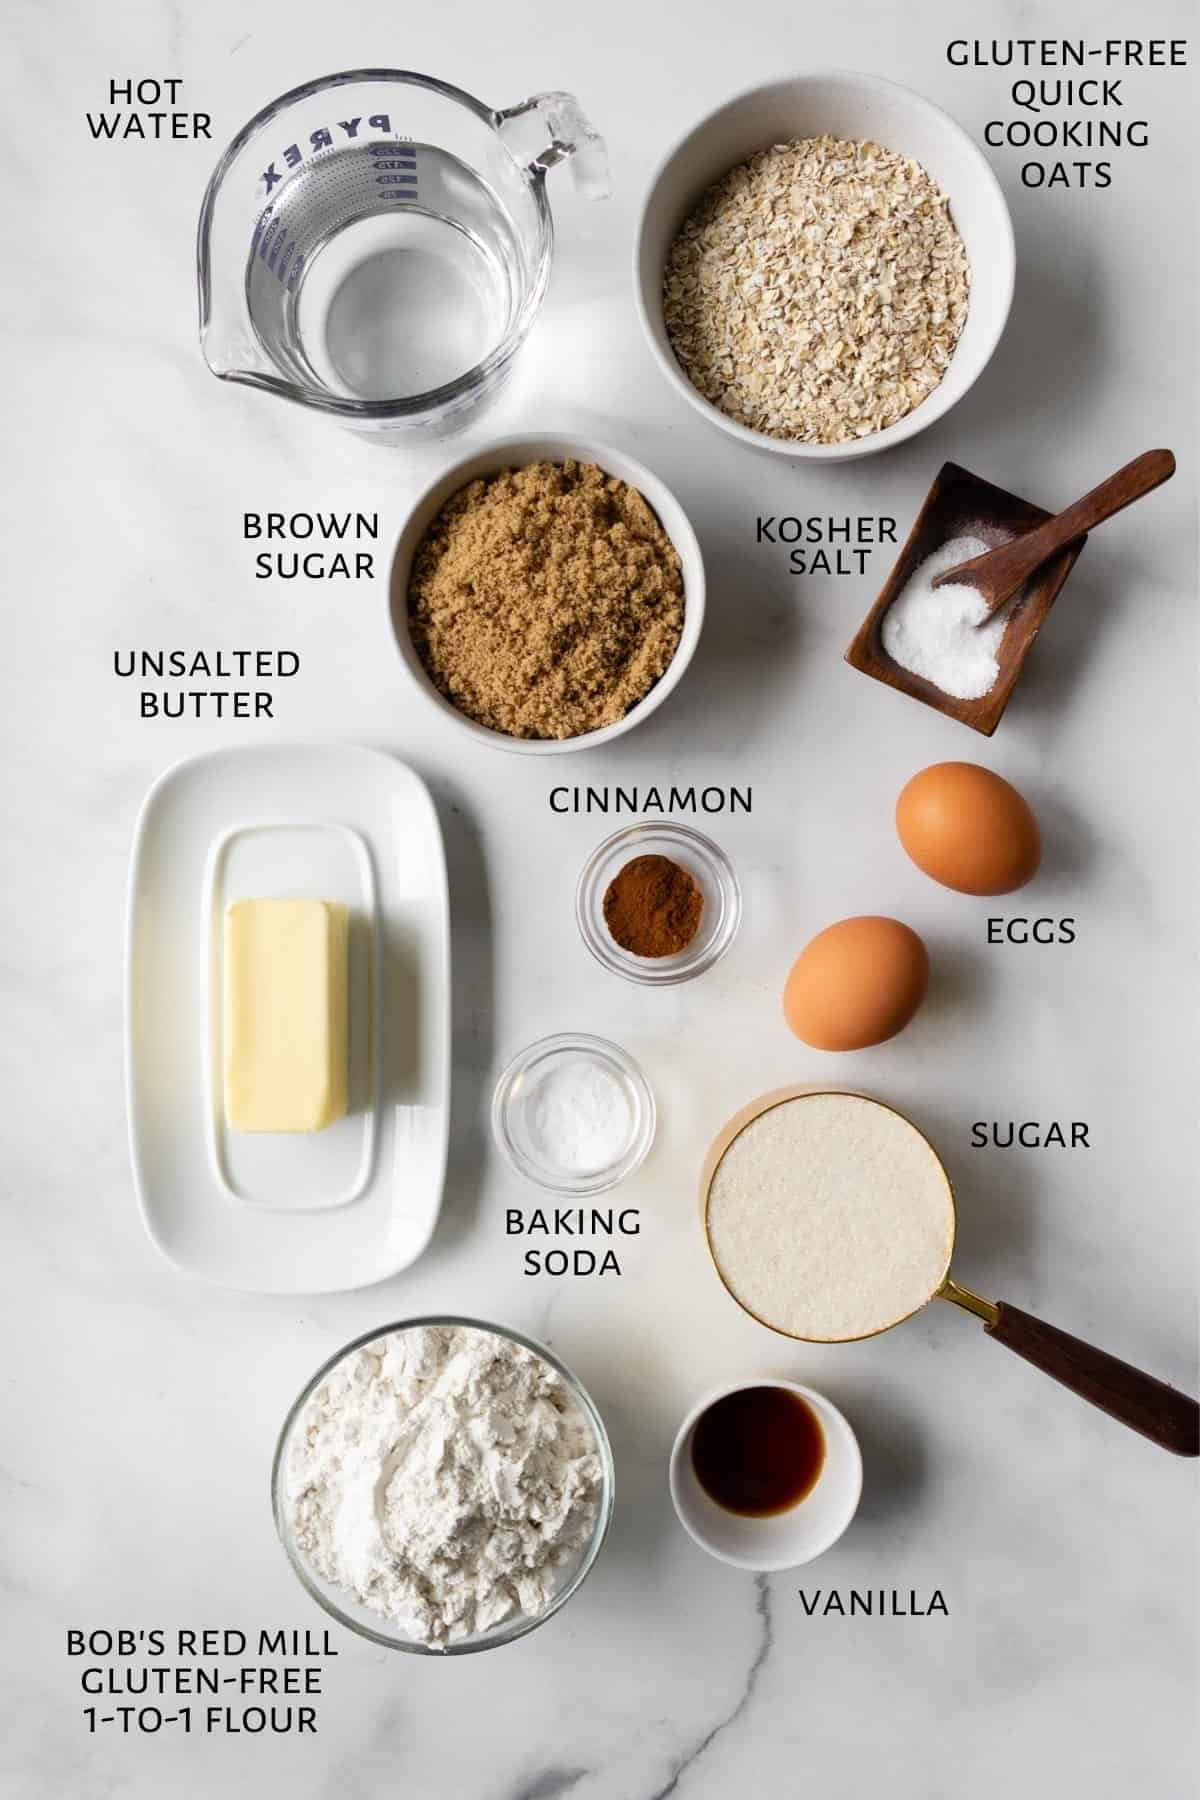 Ingredients to make oatmeal cake are laid out on a marble countertop.